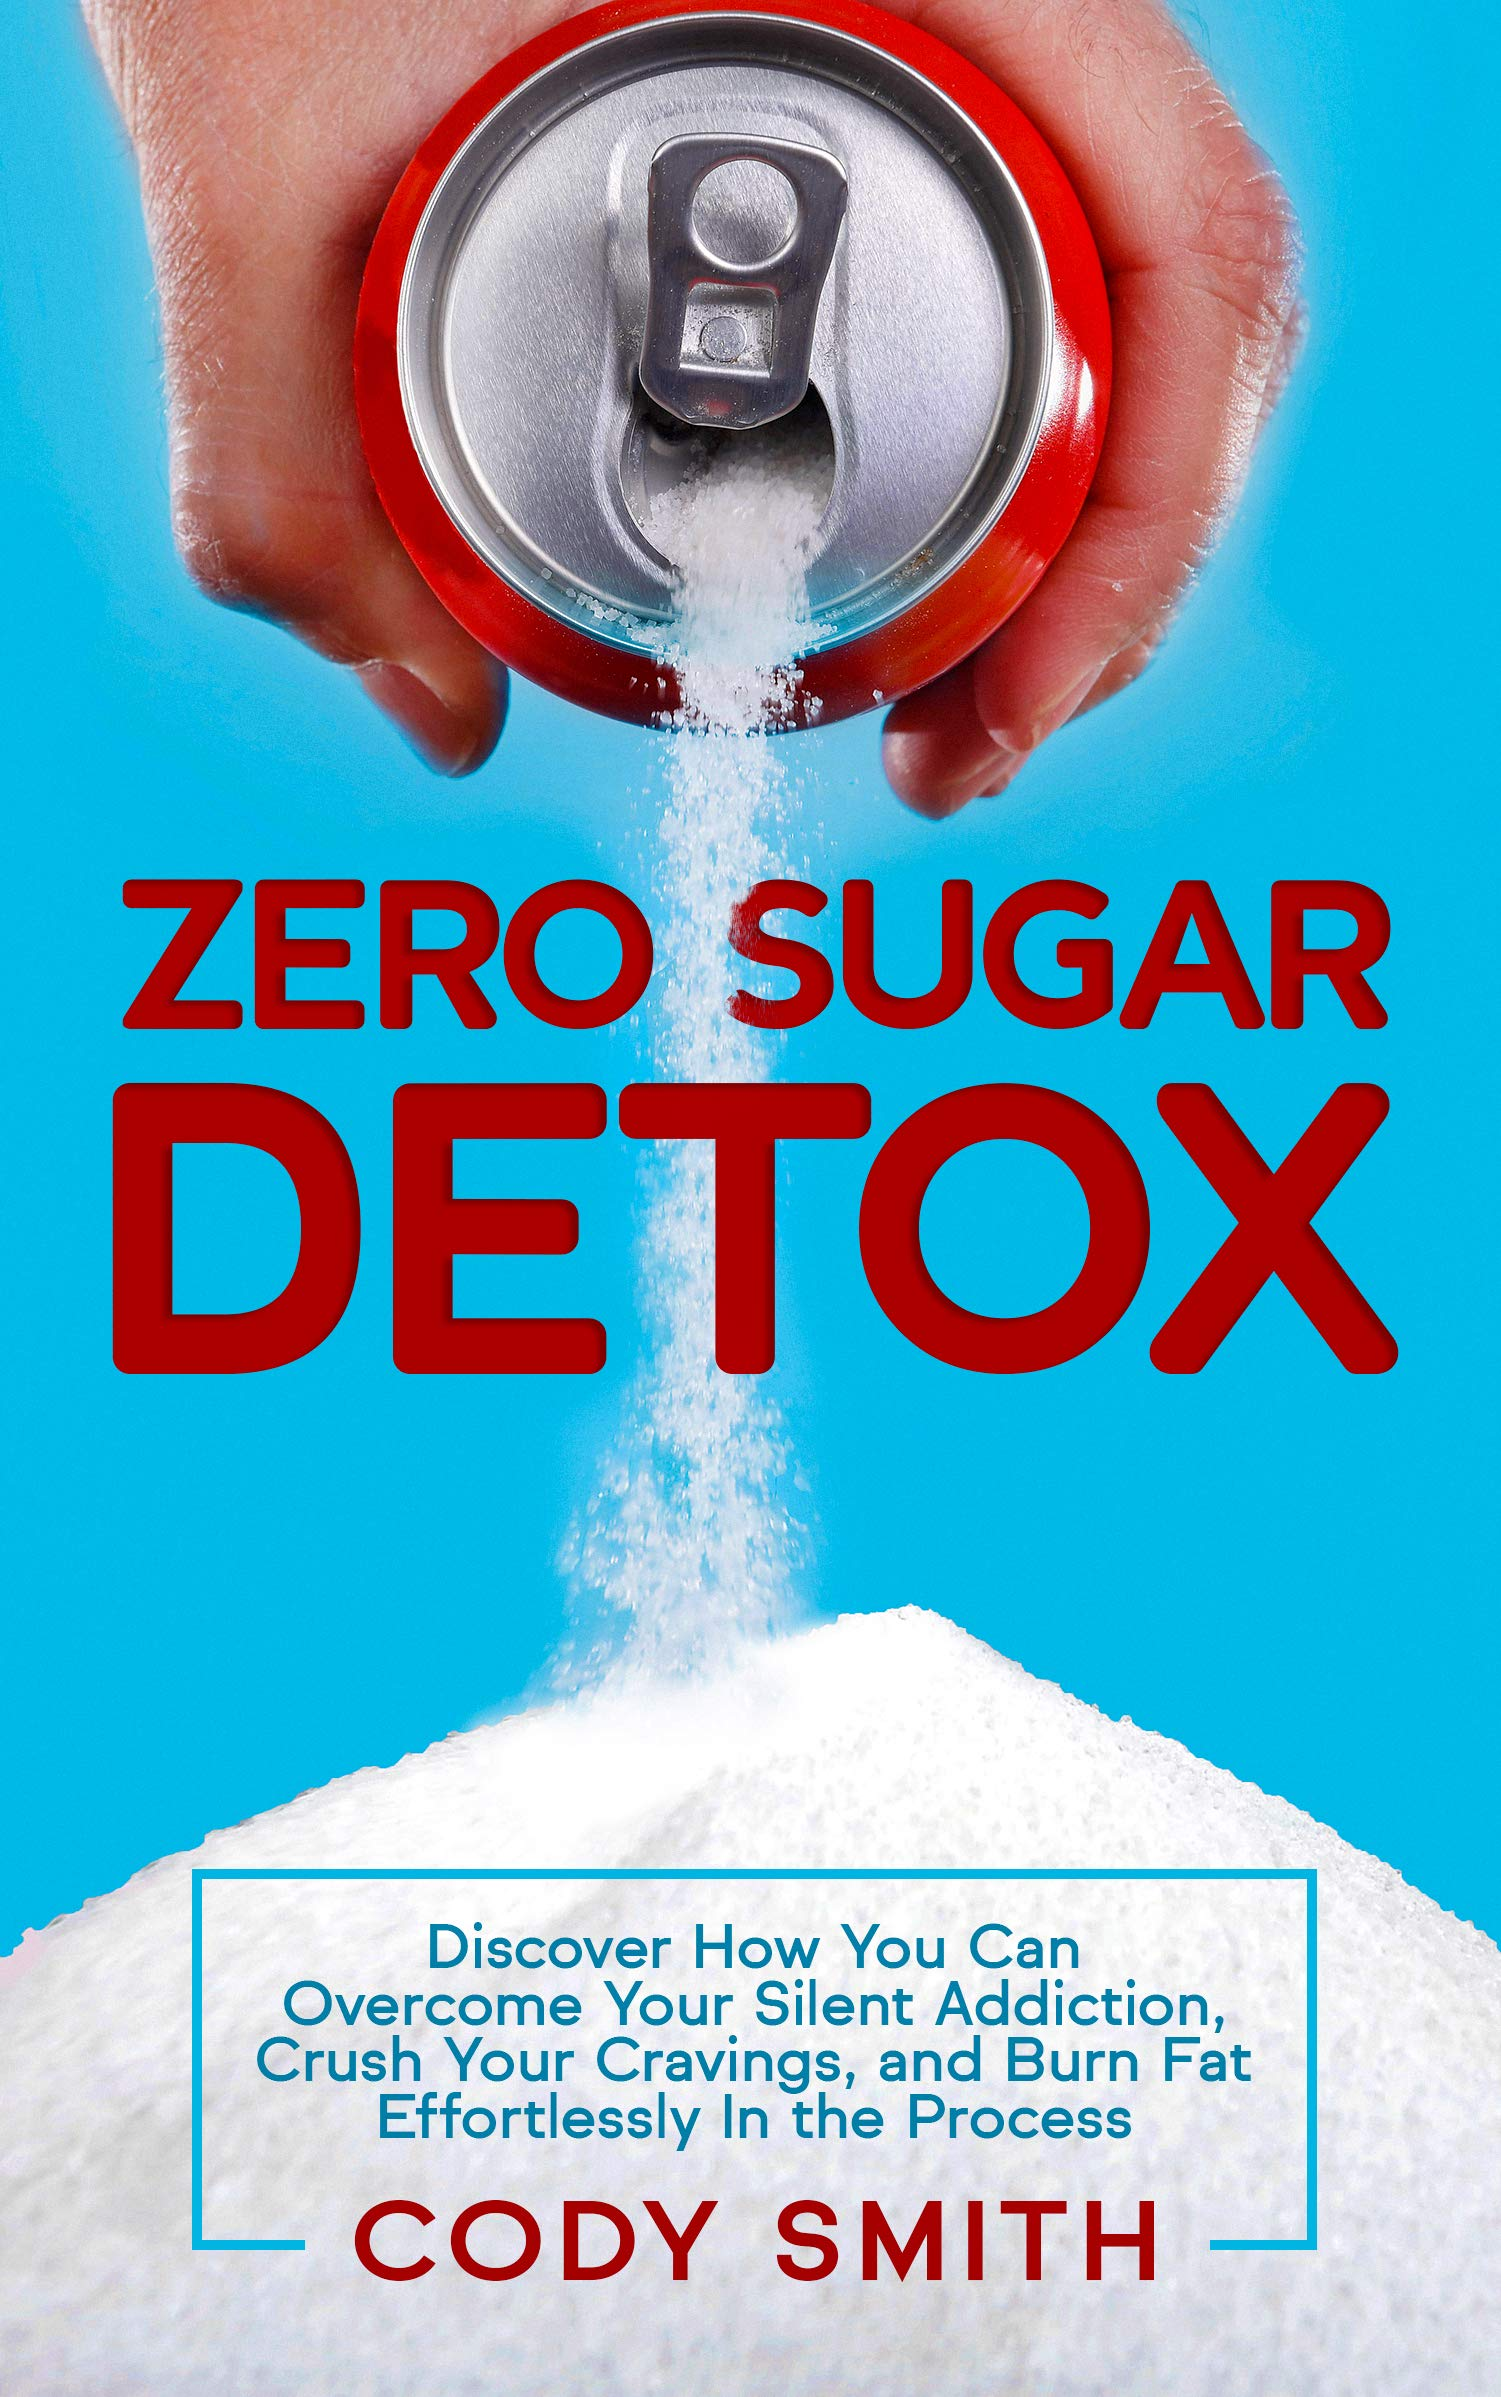 Zero Sugar Detox Discover How You Can Overcome Your Silent Addiction